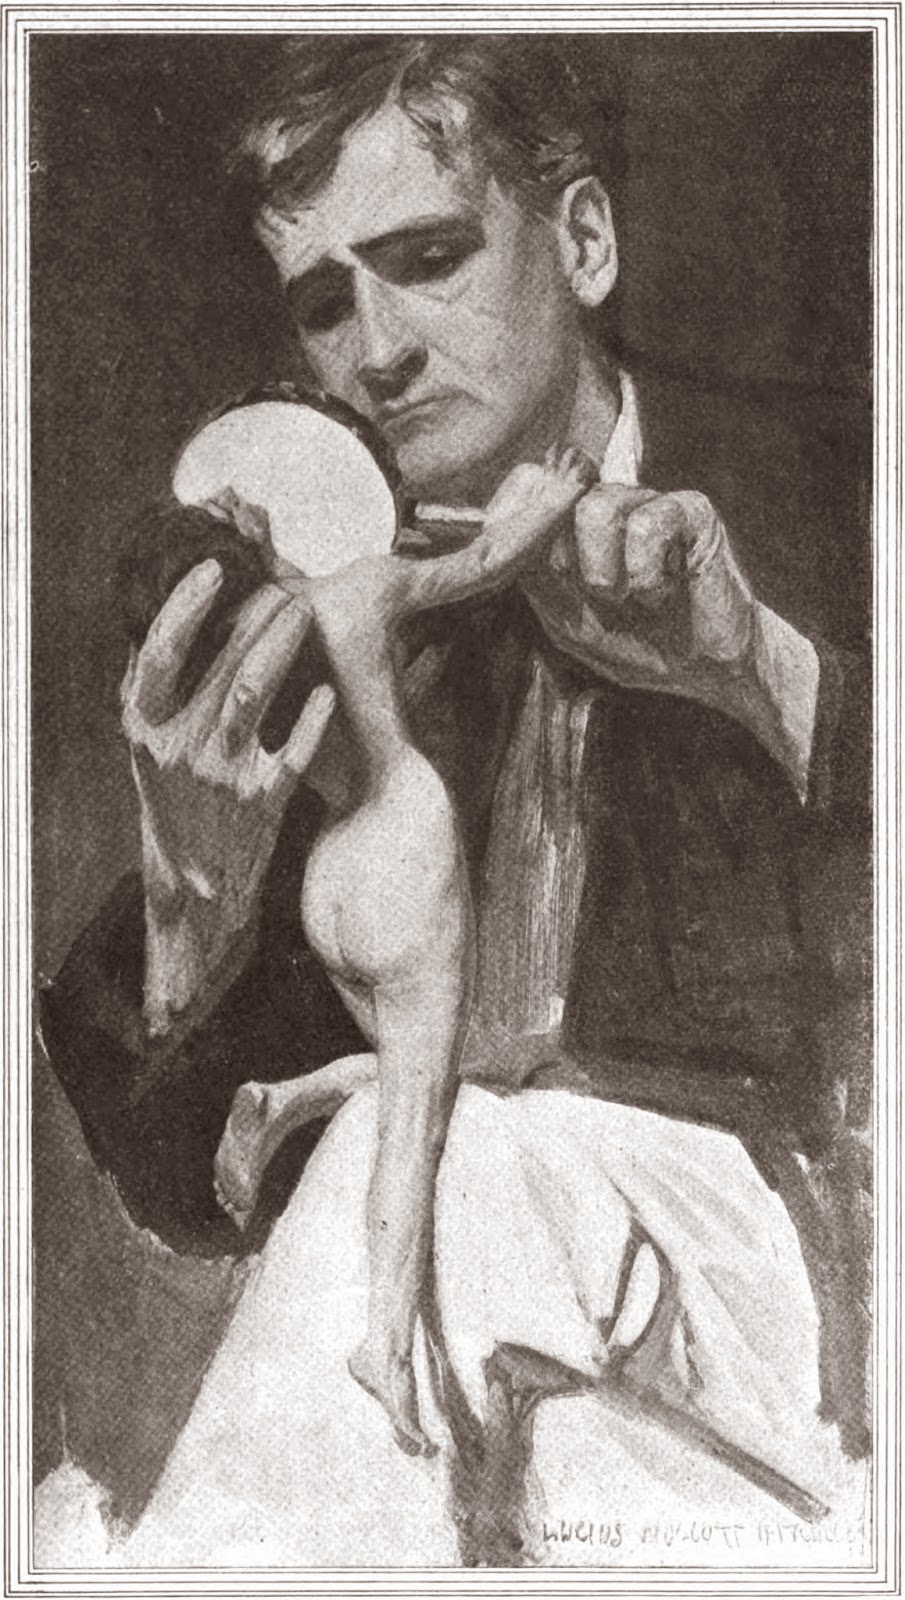 Interior Illustration (black and white) by Lucius Wolcott Hitchcock for In the Grass by Gouverneur Morris